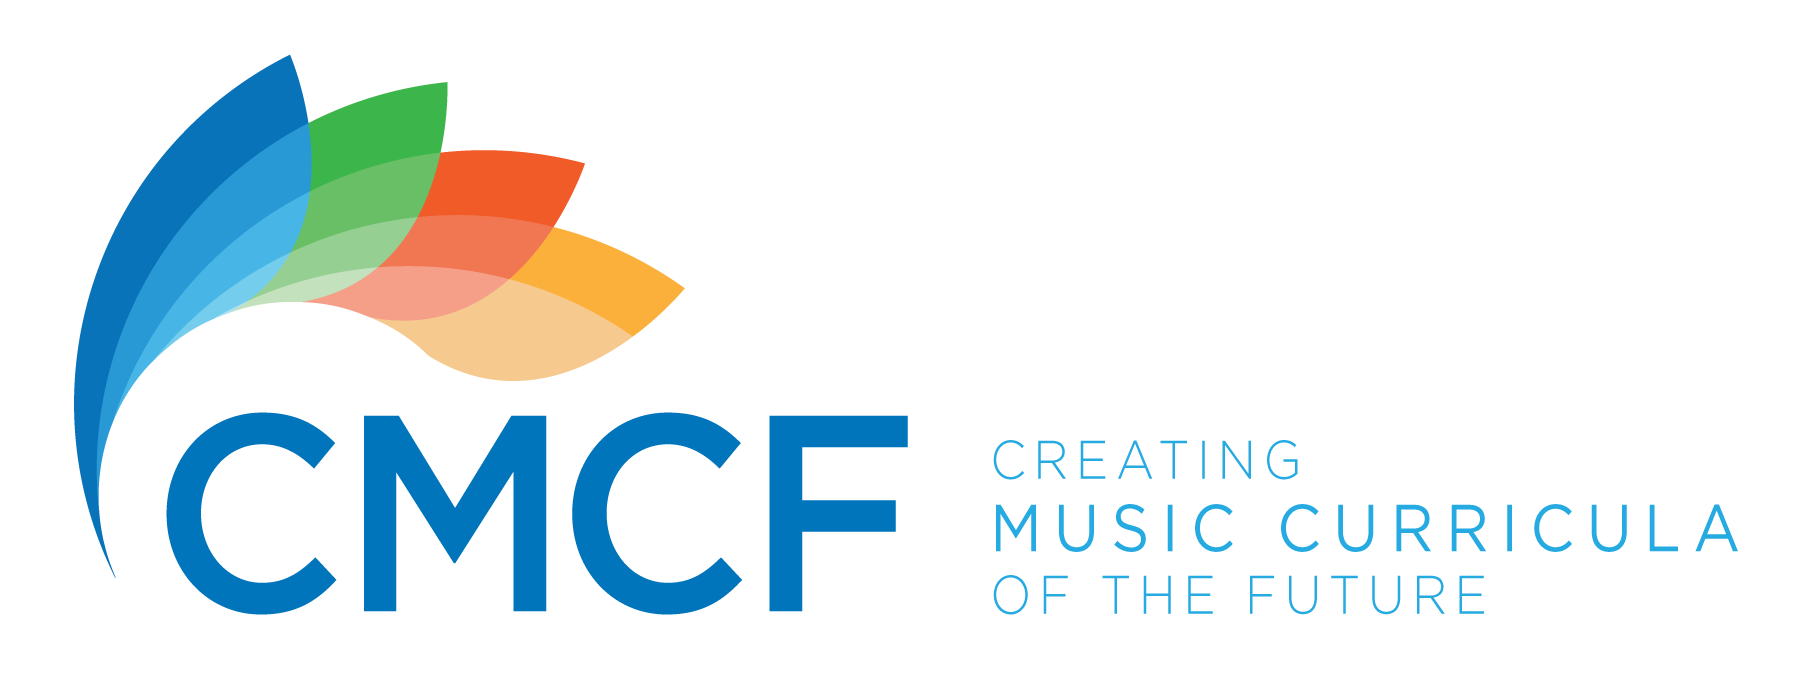 Creating Music Curricula of the Future